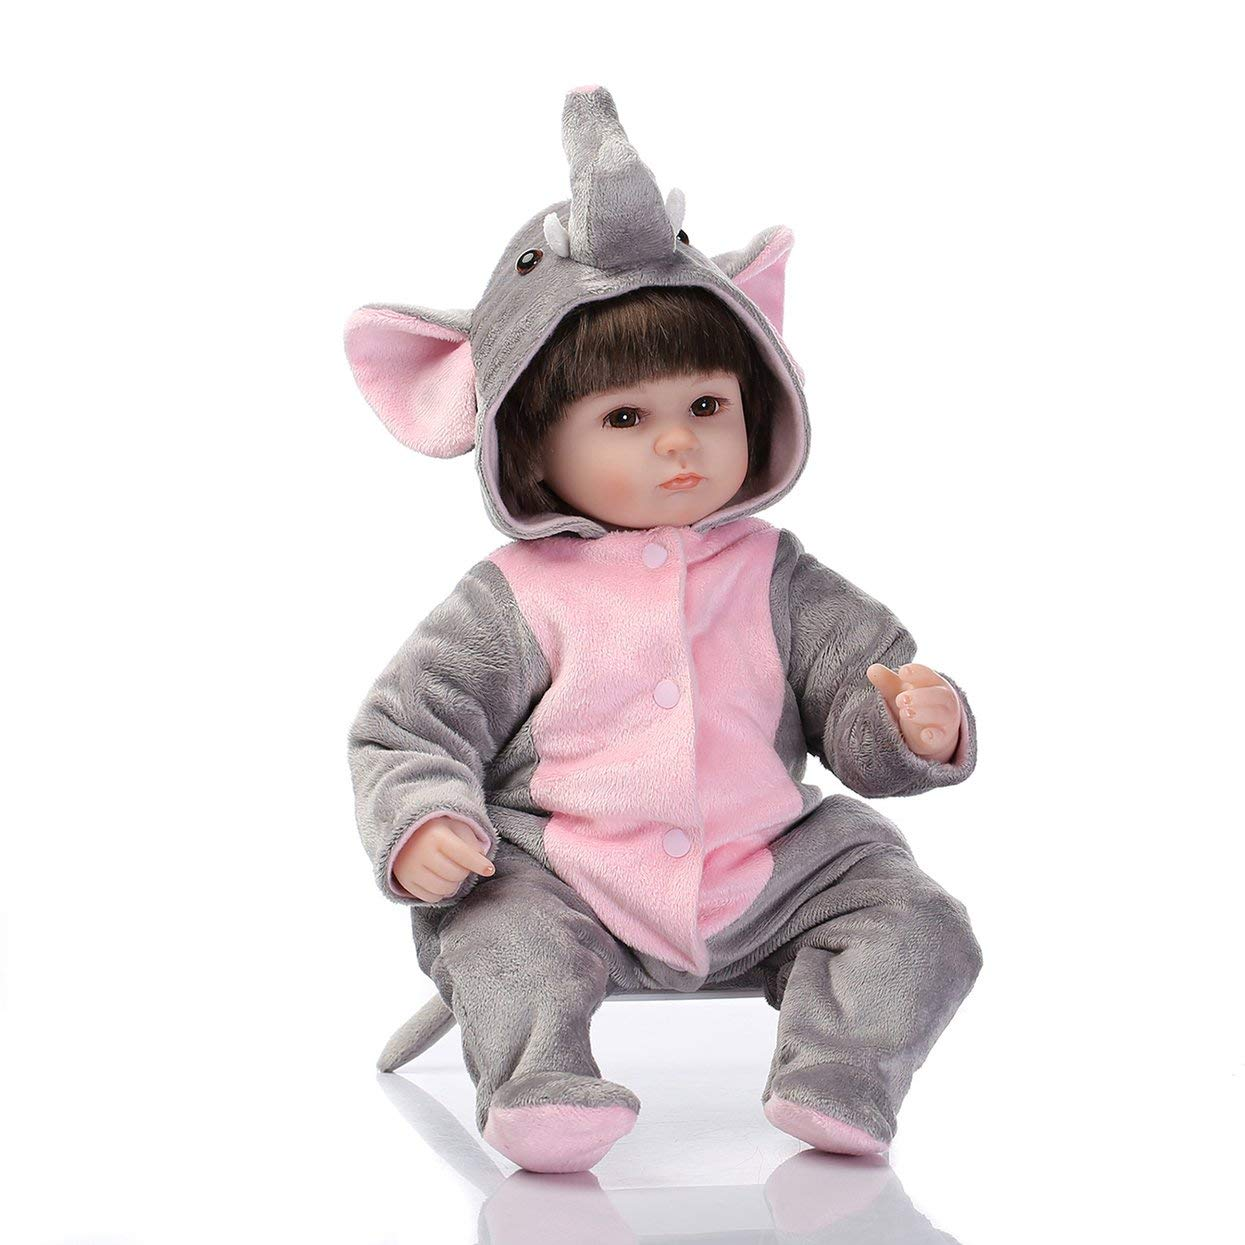 Lovely Cute Elephant Reborn Baby Dolls DIY Juguetes de Cuerpo Completo Realistic Silicone Babies Doll Touch Soft Early Education Toys